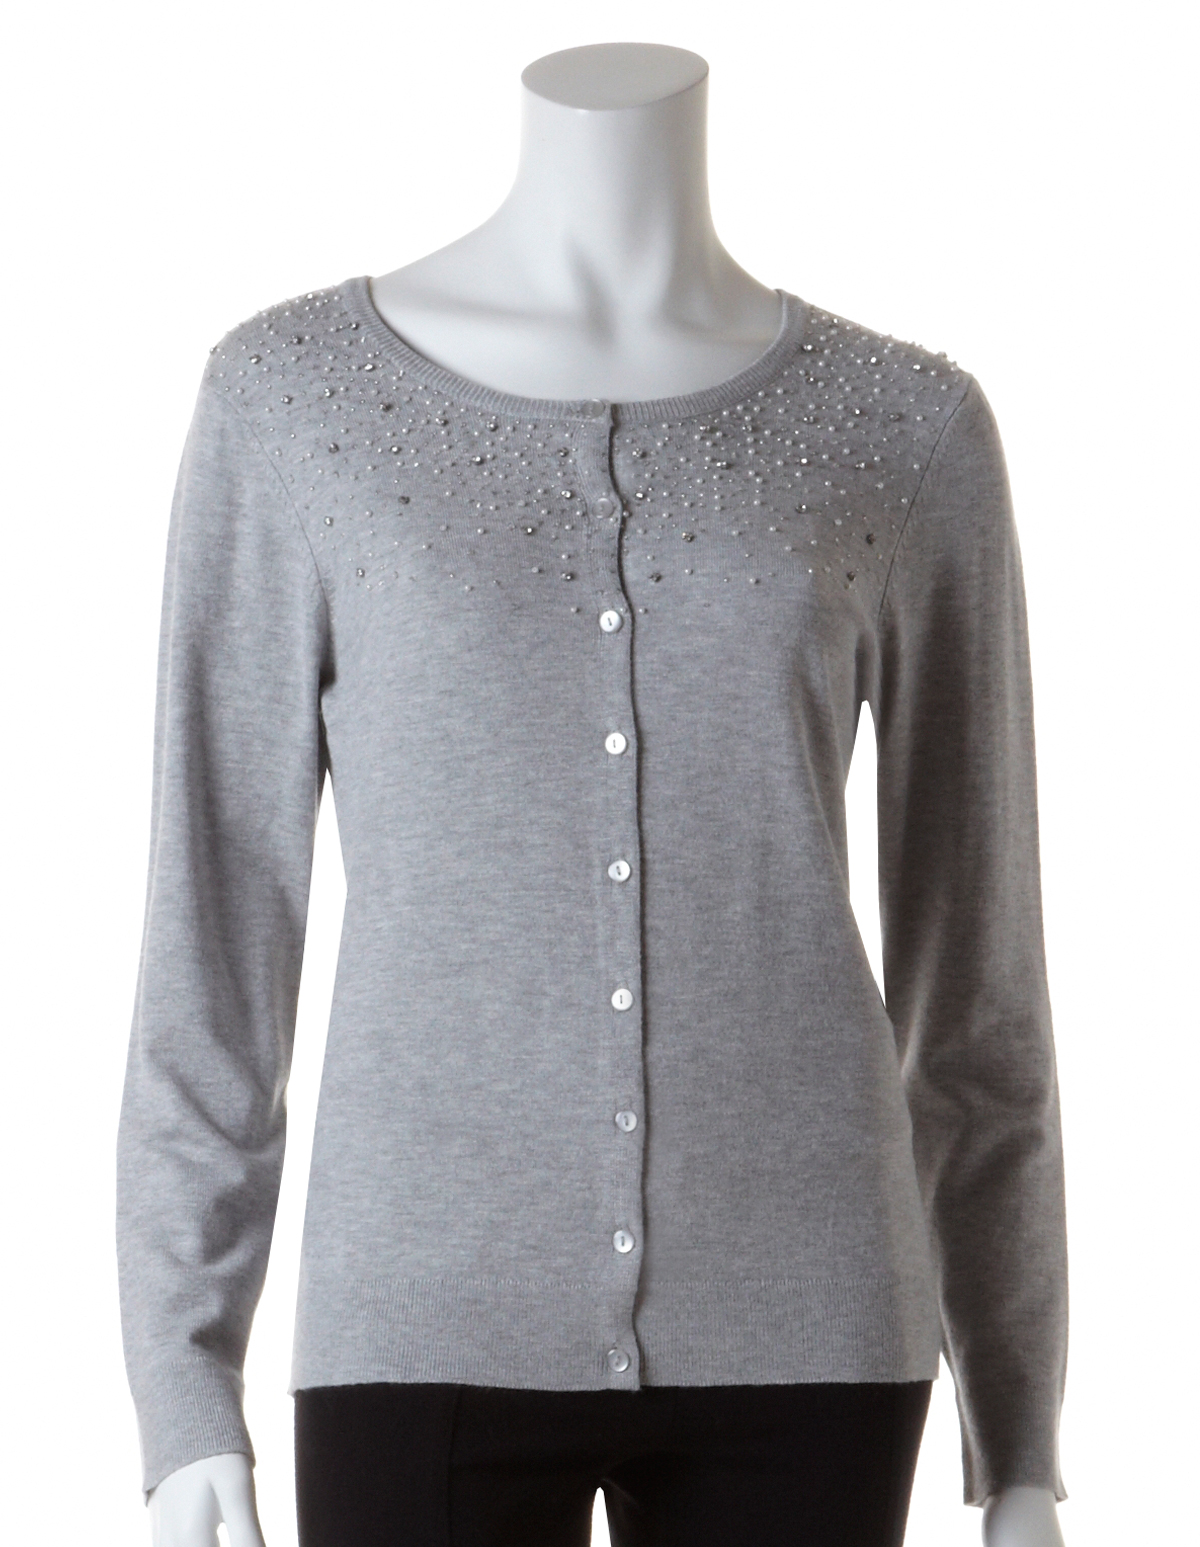 Pearl and Crystal Sparkle Cardigan | Cleo